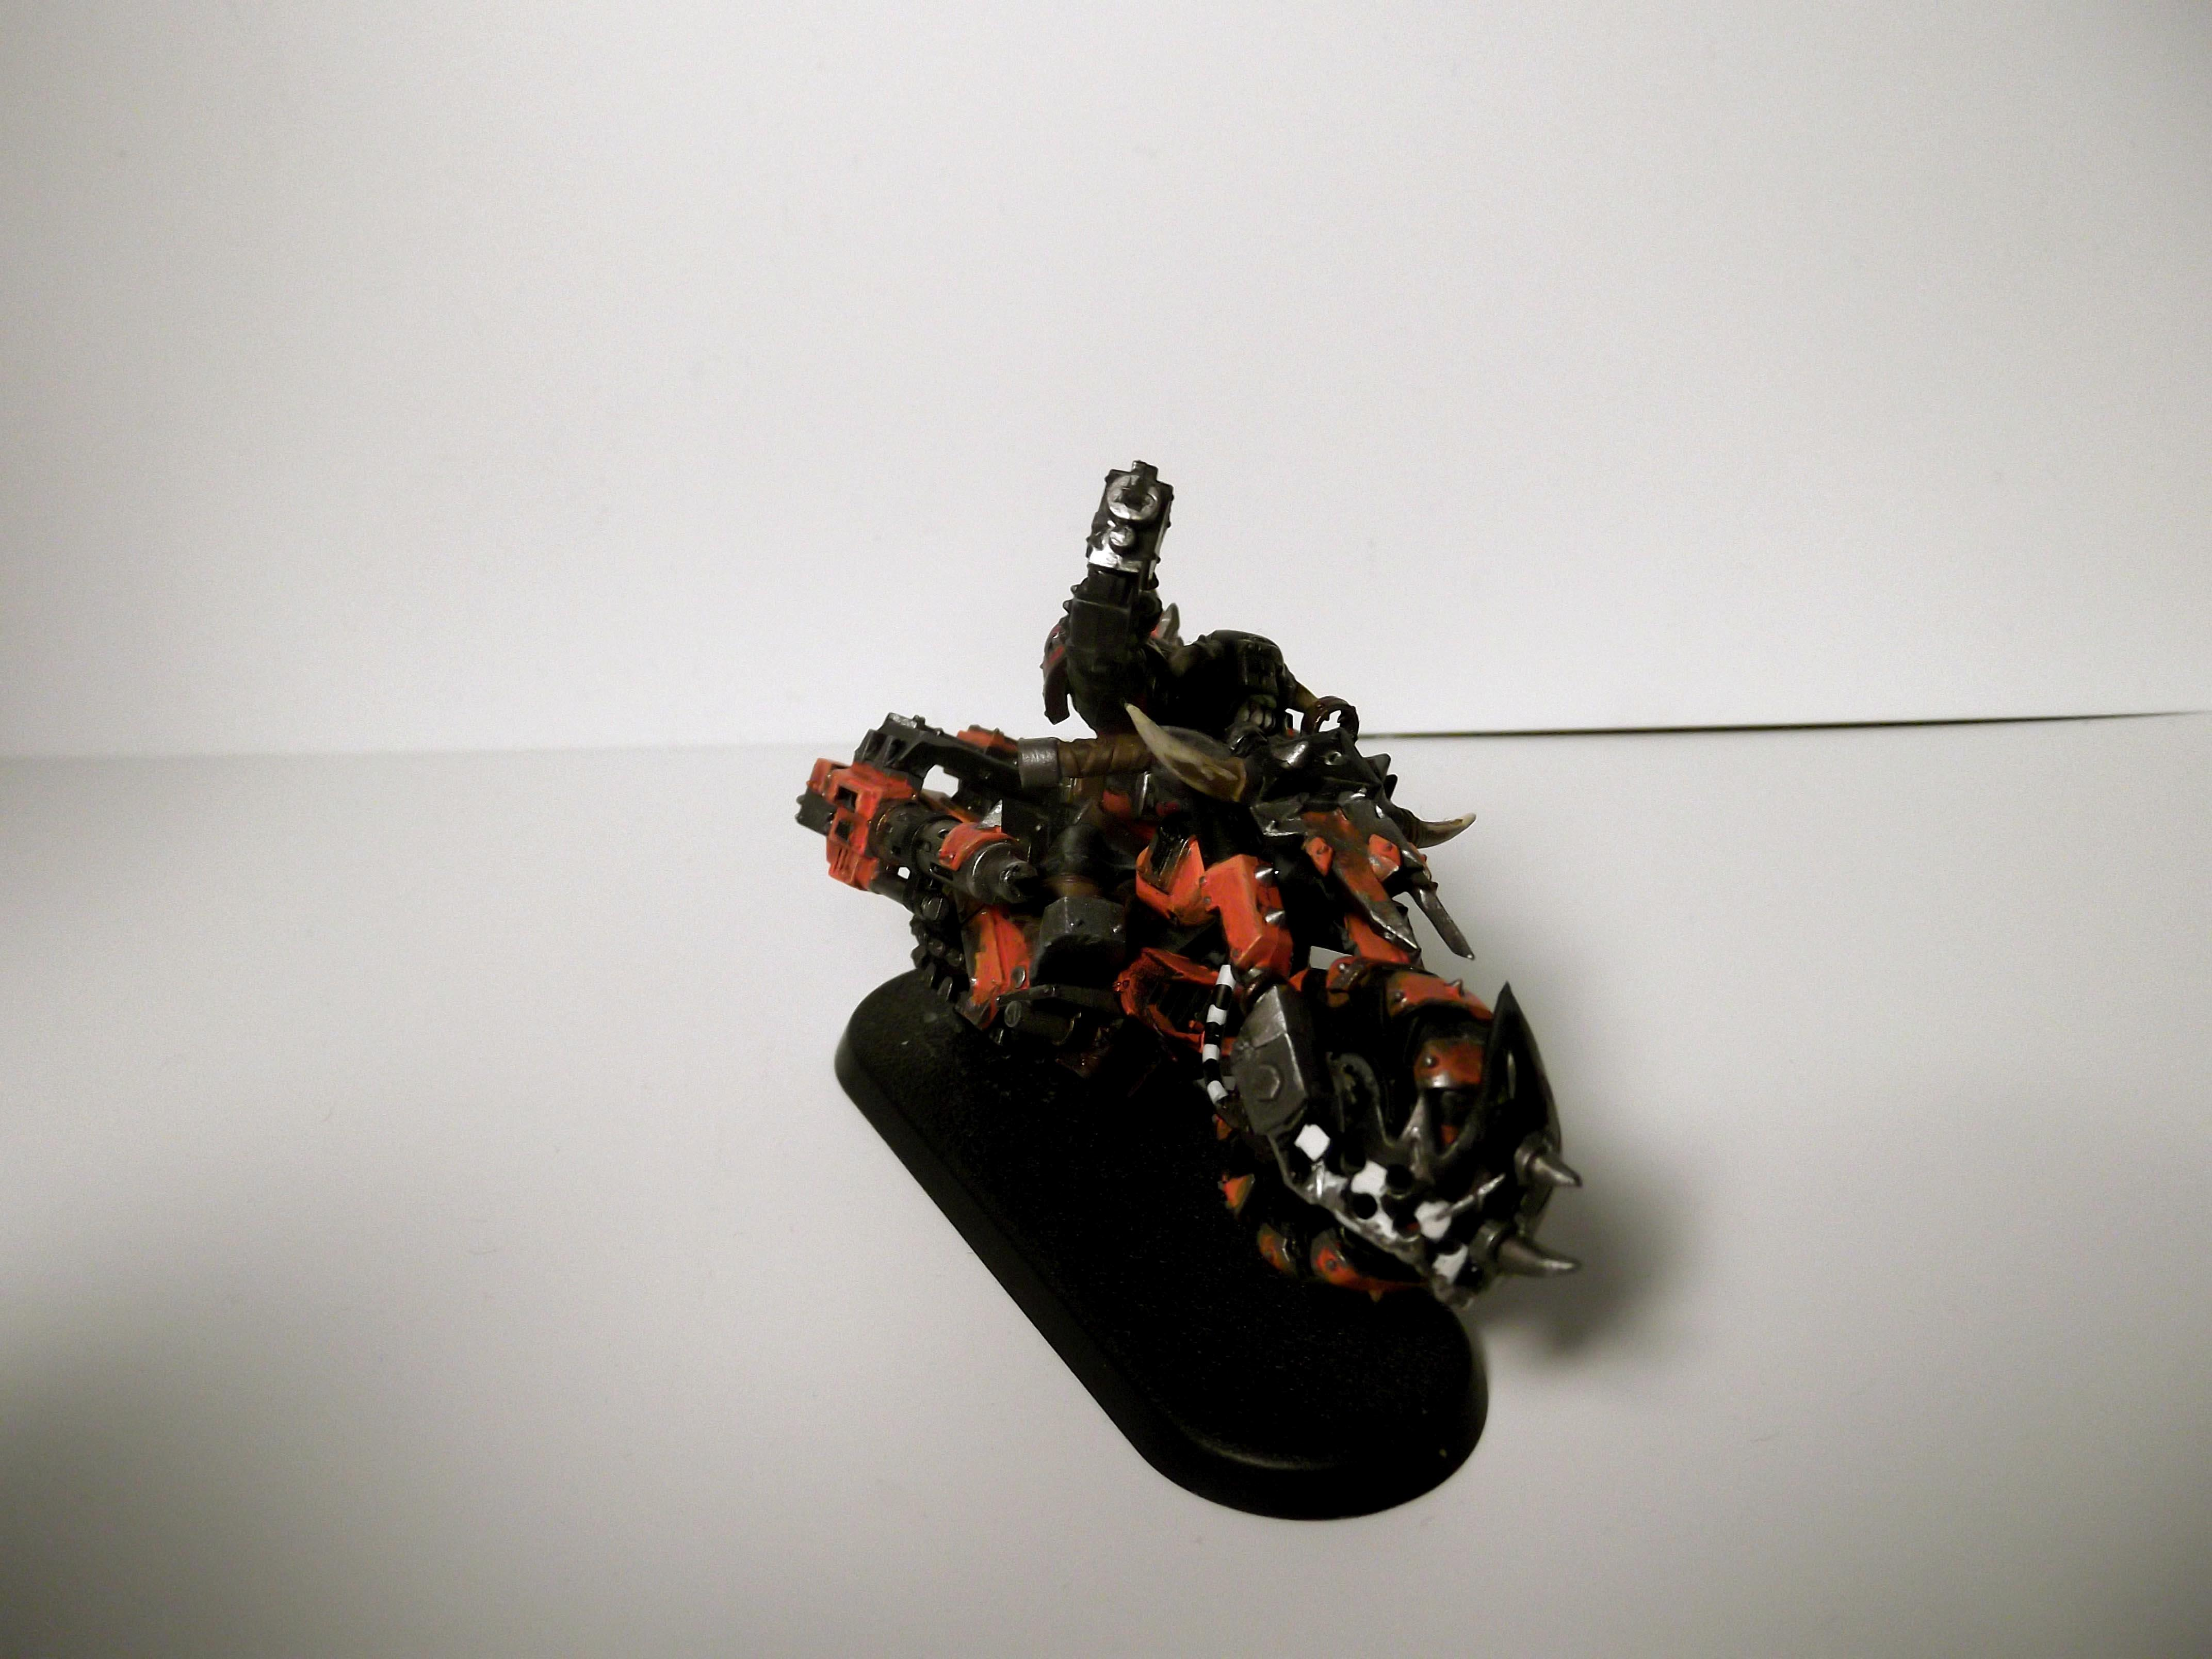 Not the best pic but the other image just makes it look like the ork is falling over